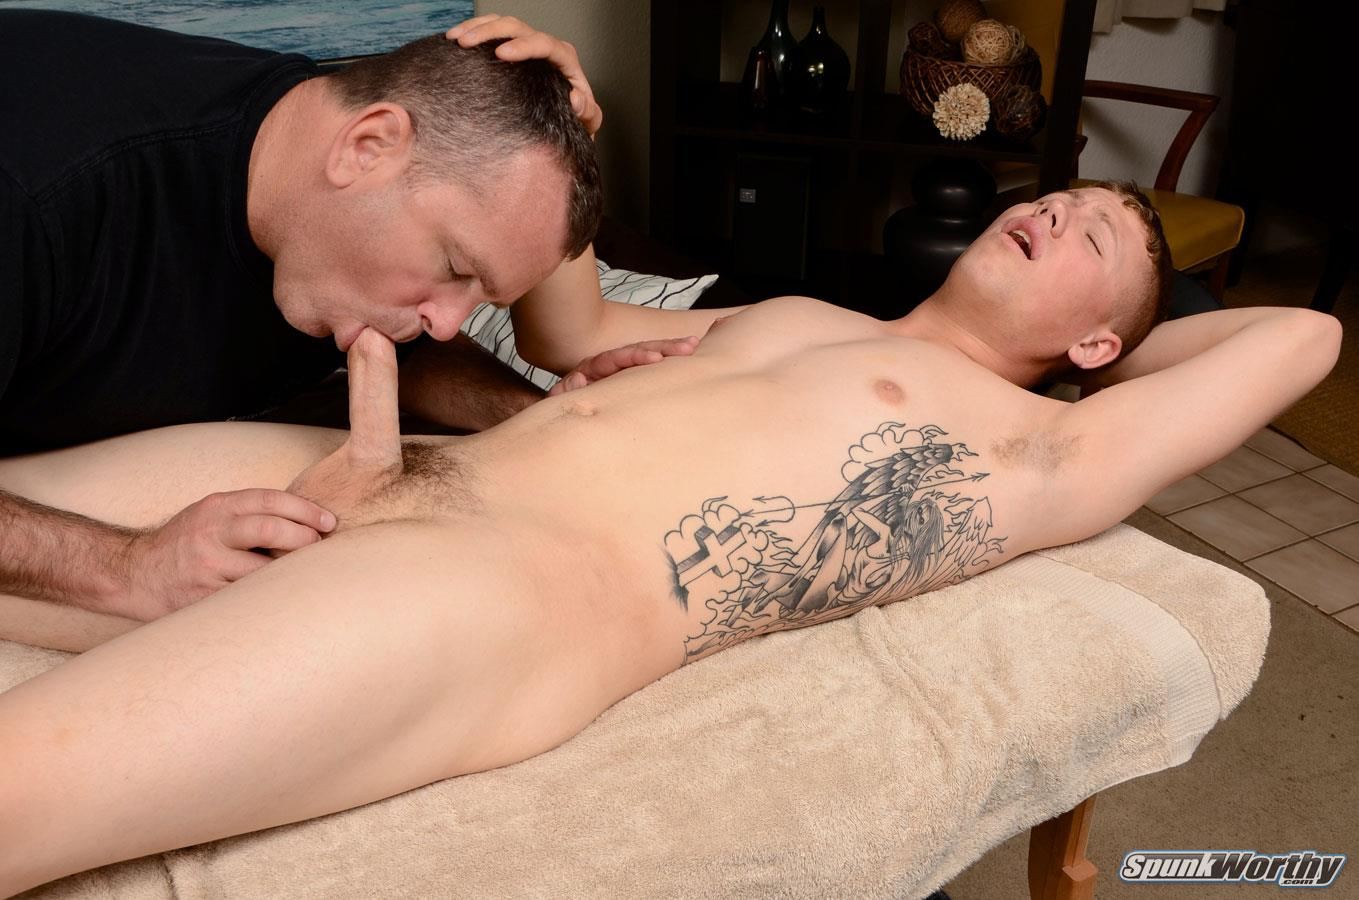 Spunk Worthy Sean Straight Marine Getting Massage With Happy Ending Amateur Gay Porn 13 Straight Marine Gets A Massage With Happy Ending From A Guy